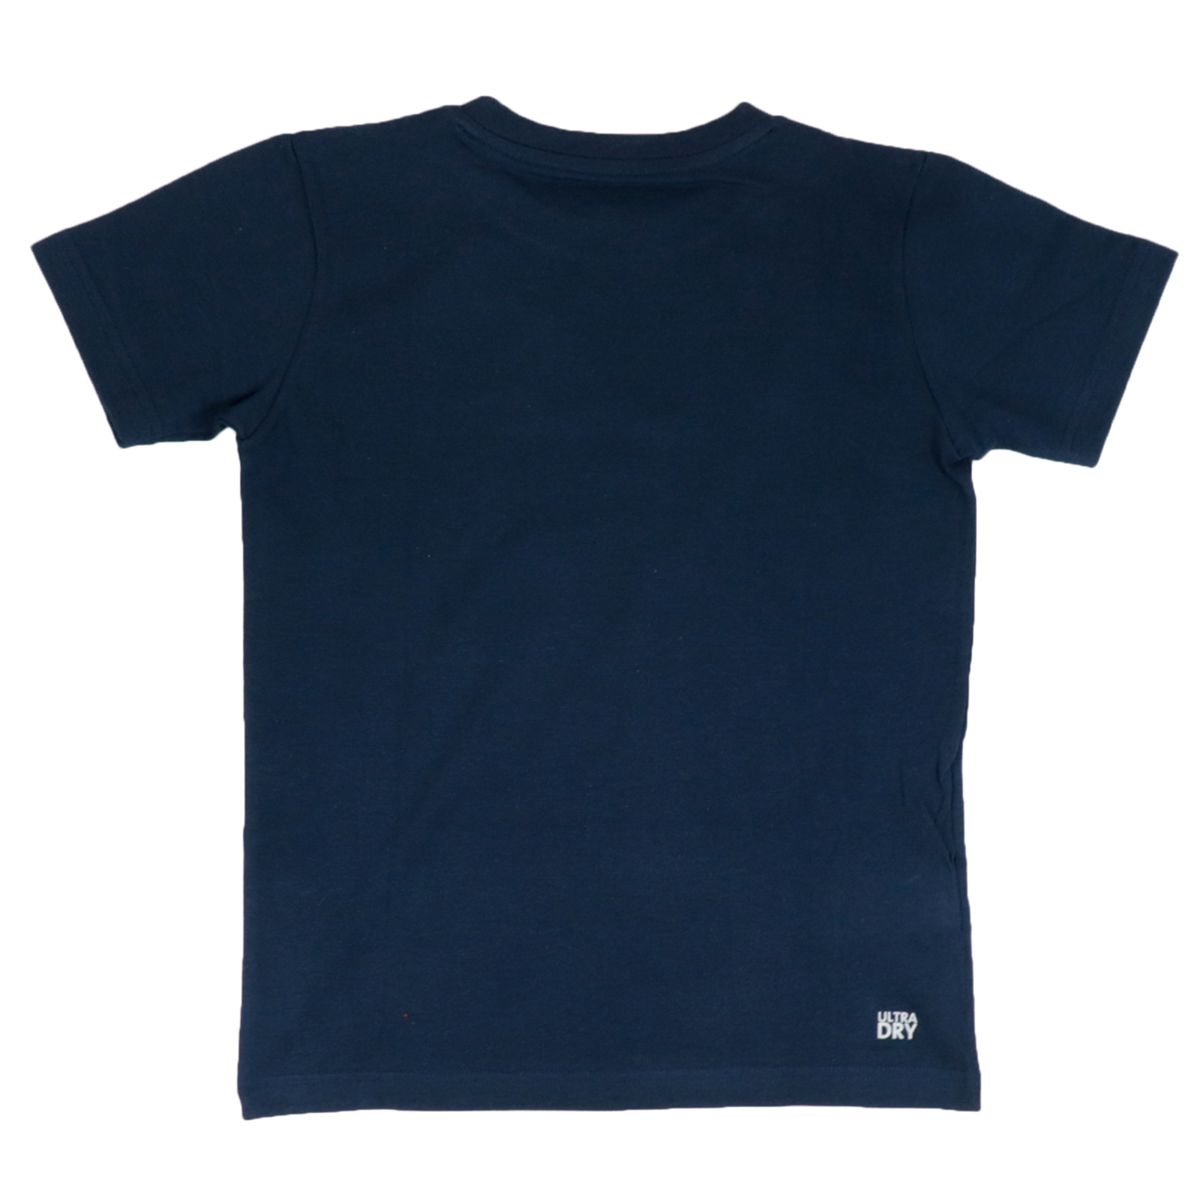 Ultra-Dry cotton blend T-shirt with small logo Blue Lacoste